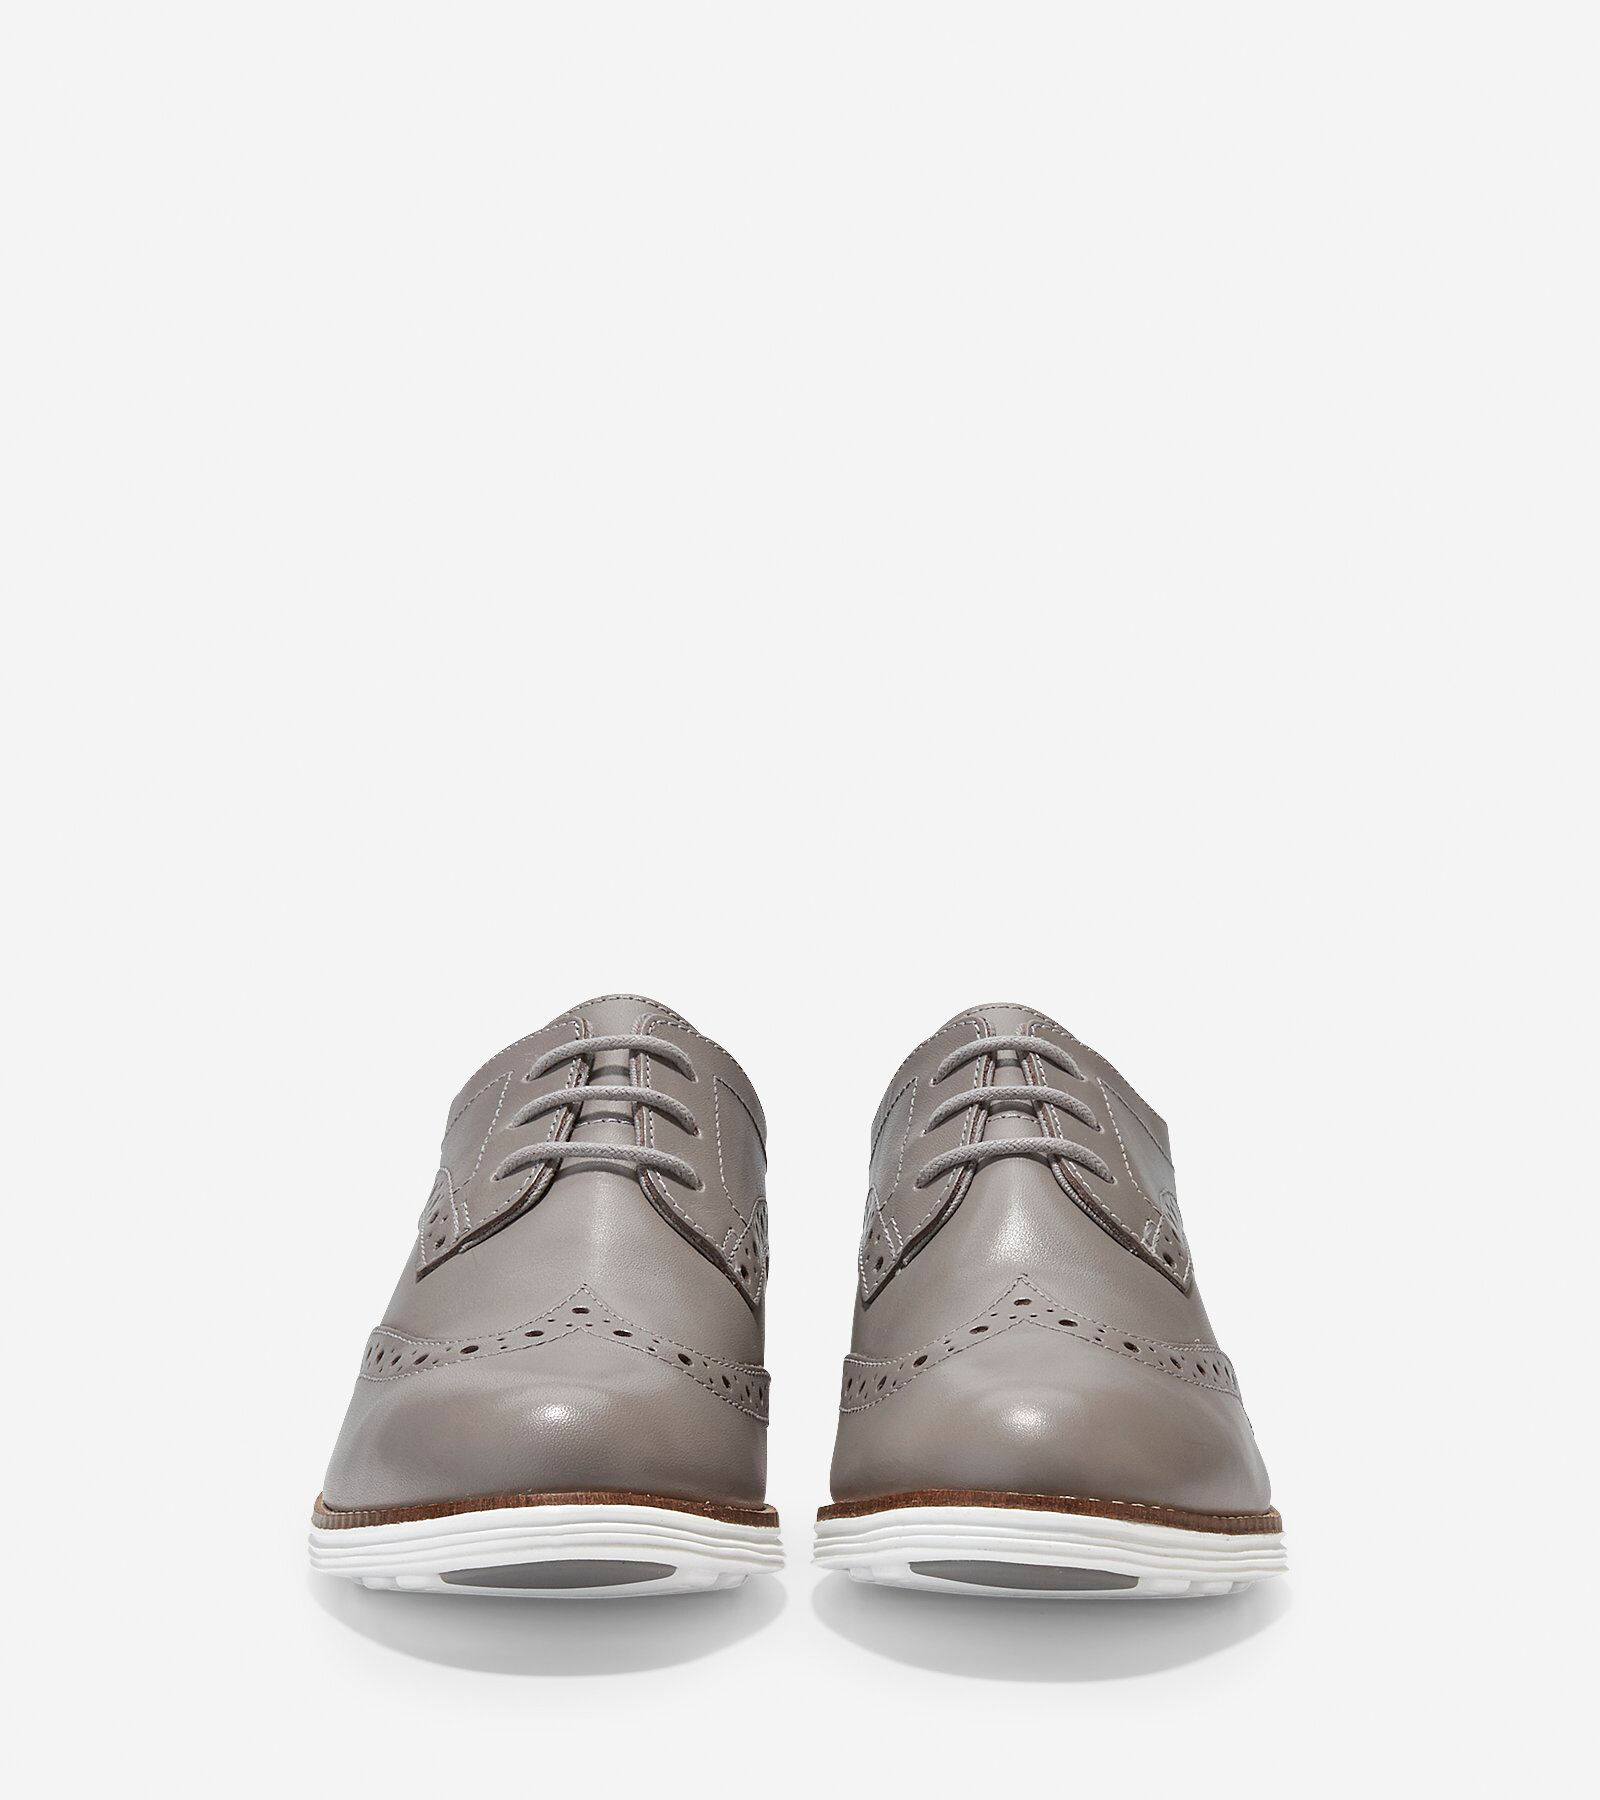 cole haan shoes 2018 trends clothing brooklyn 716578